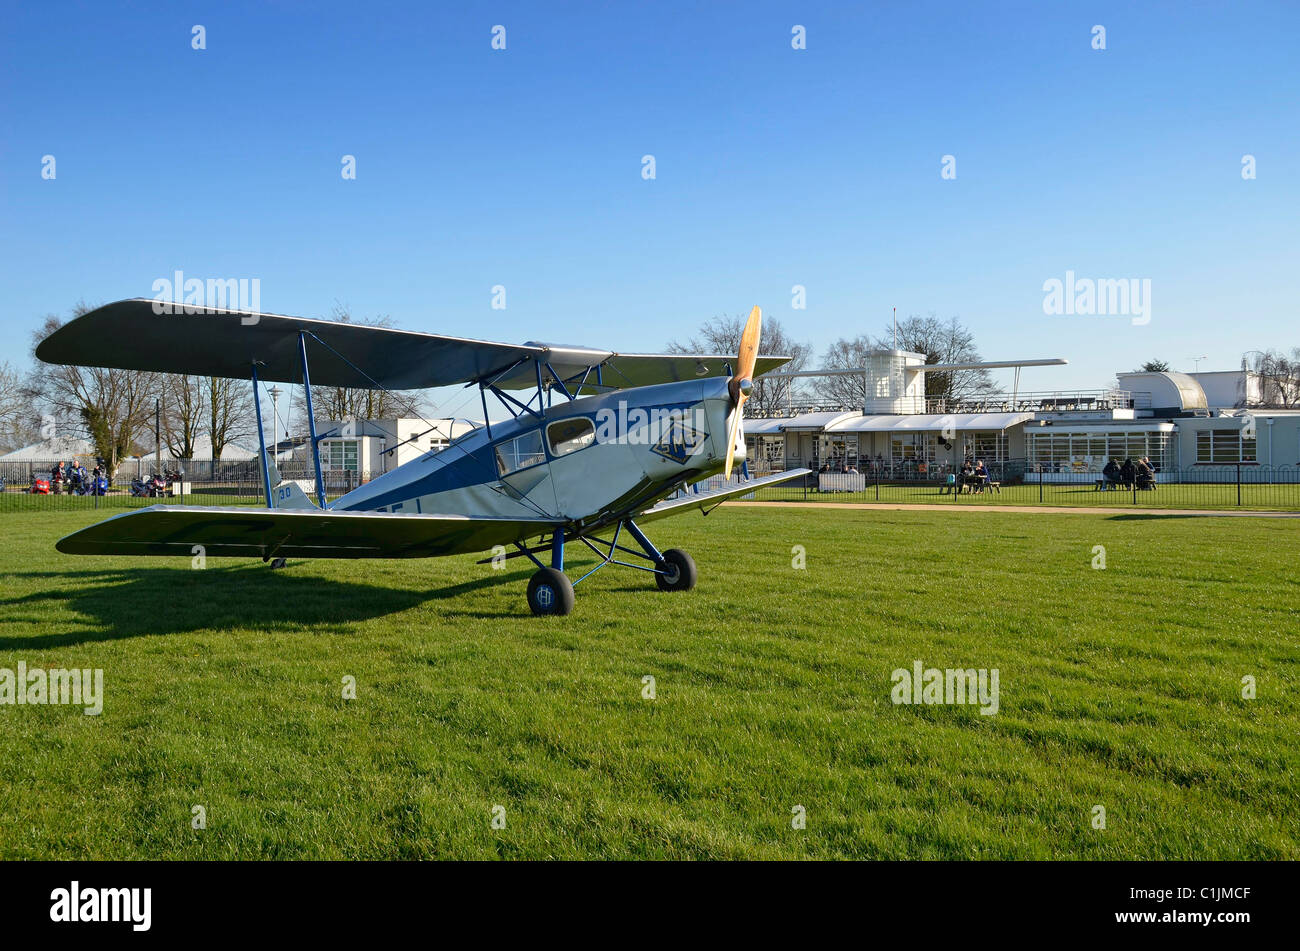 DH 83 fox moth outside sywell airfield art deco club house - Stock Image